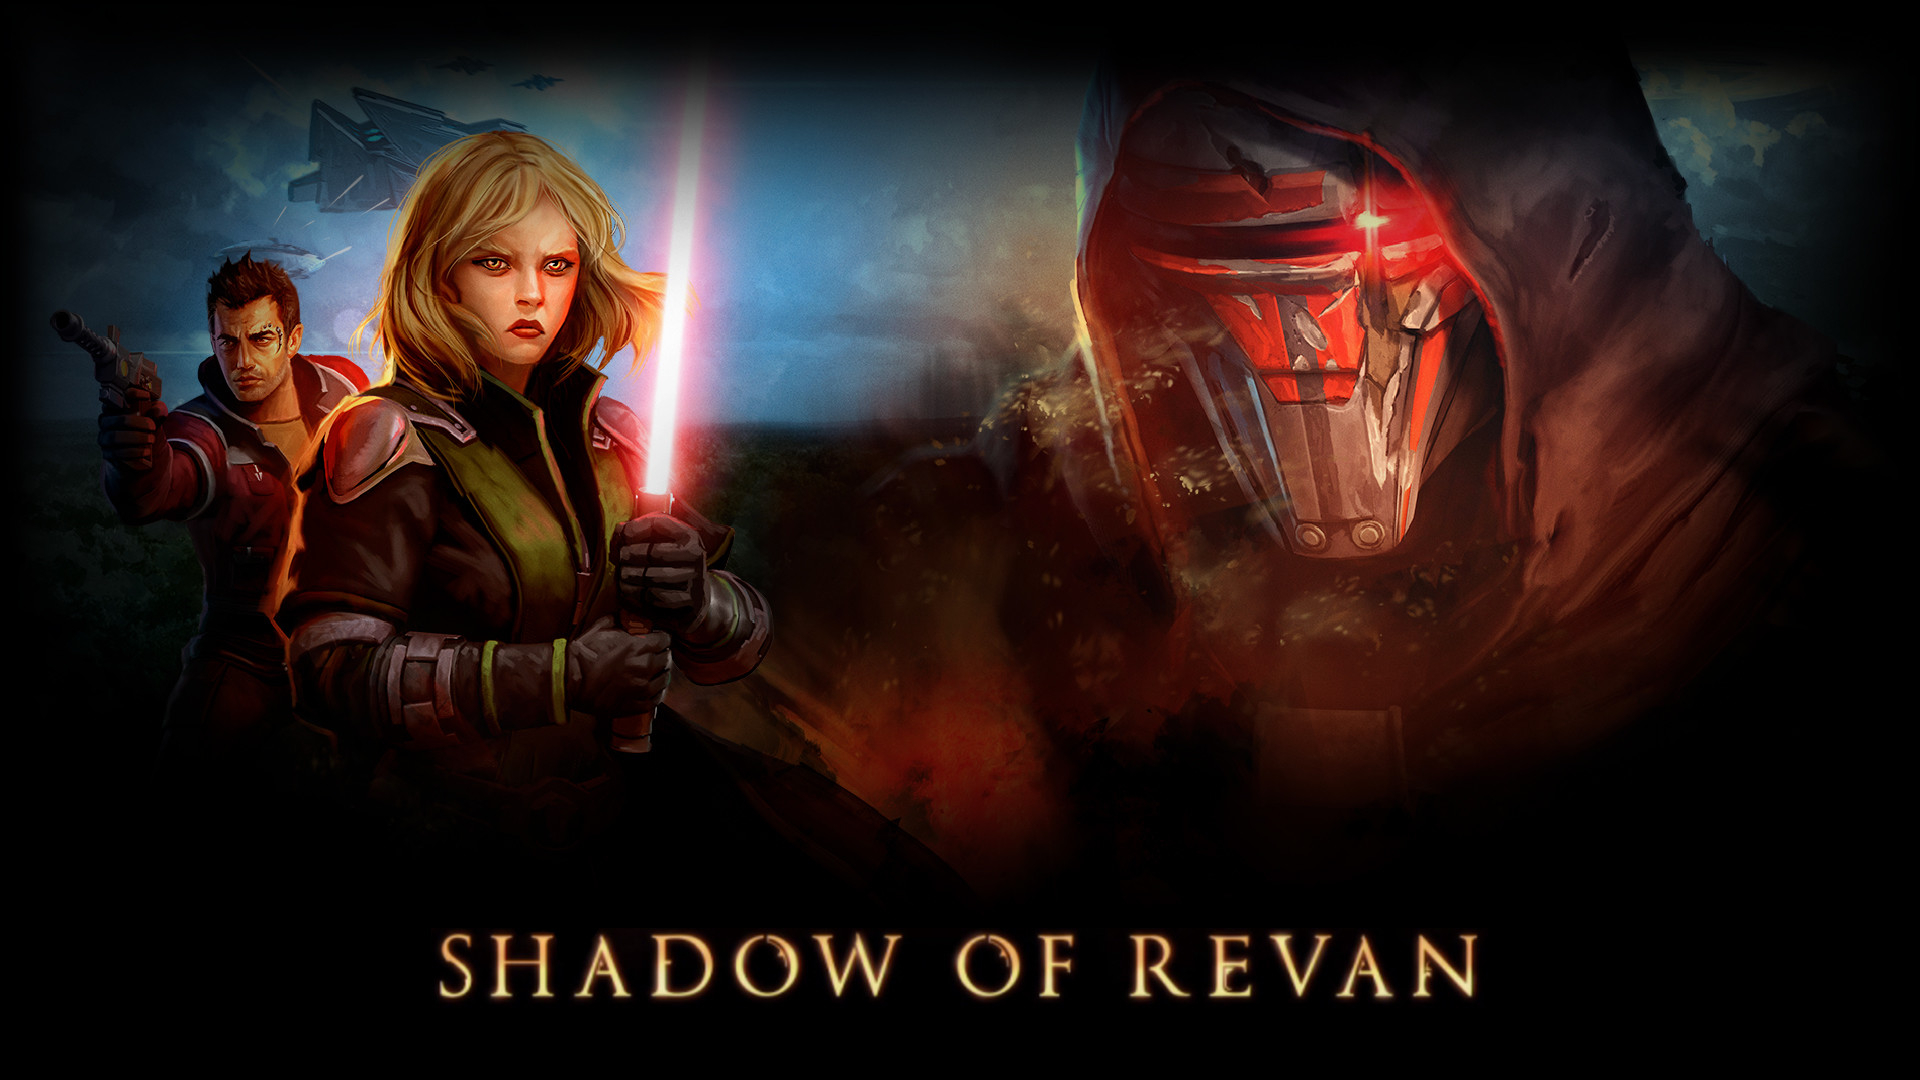 1920x1080 Shadow of Revan Wallpaper w/ Text- 1920 by 1200 | 1920 by 1080